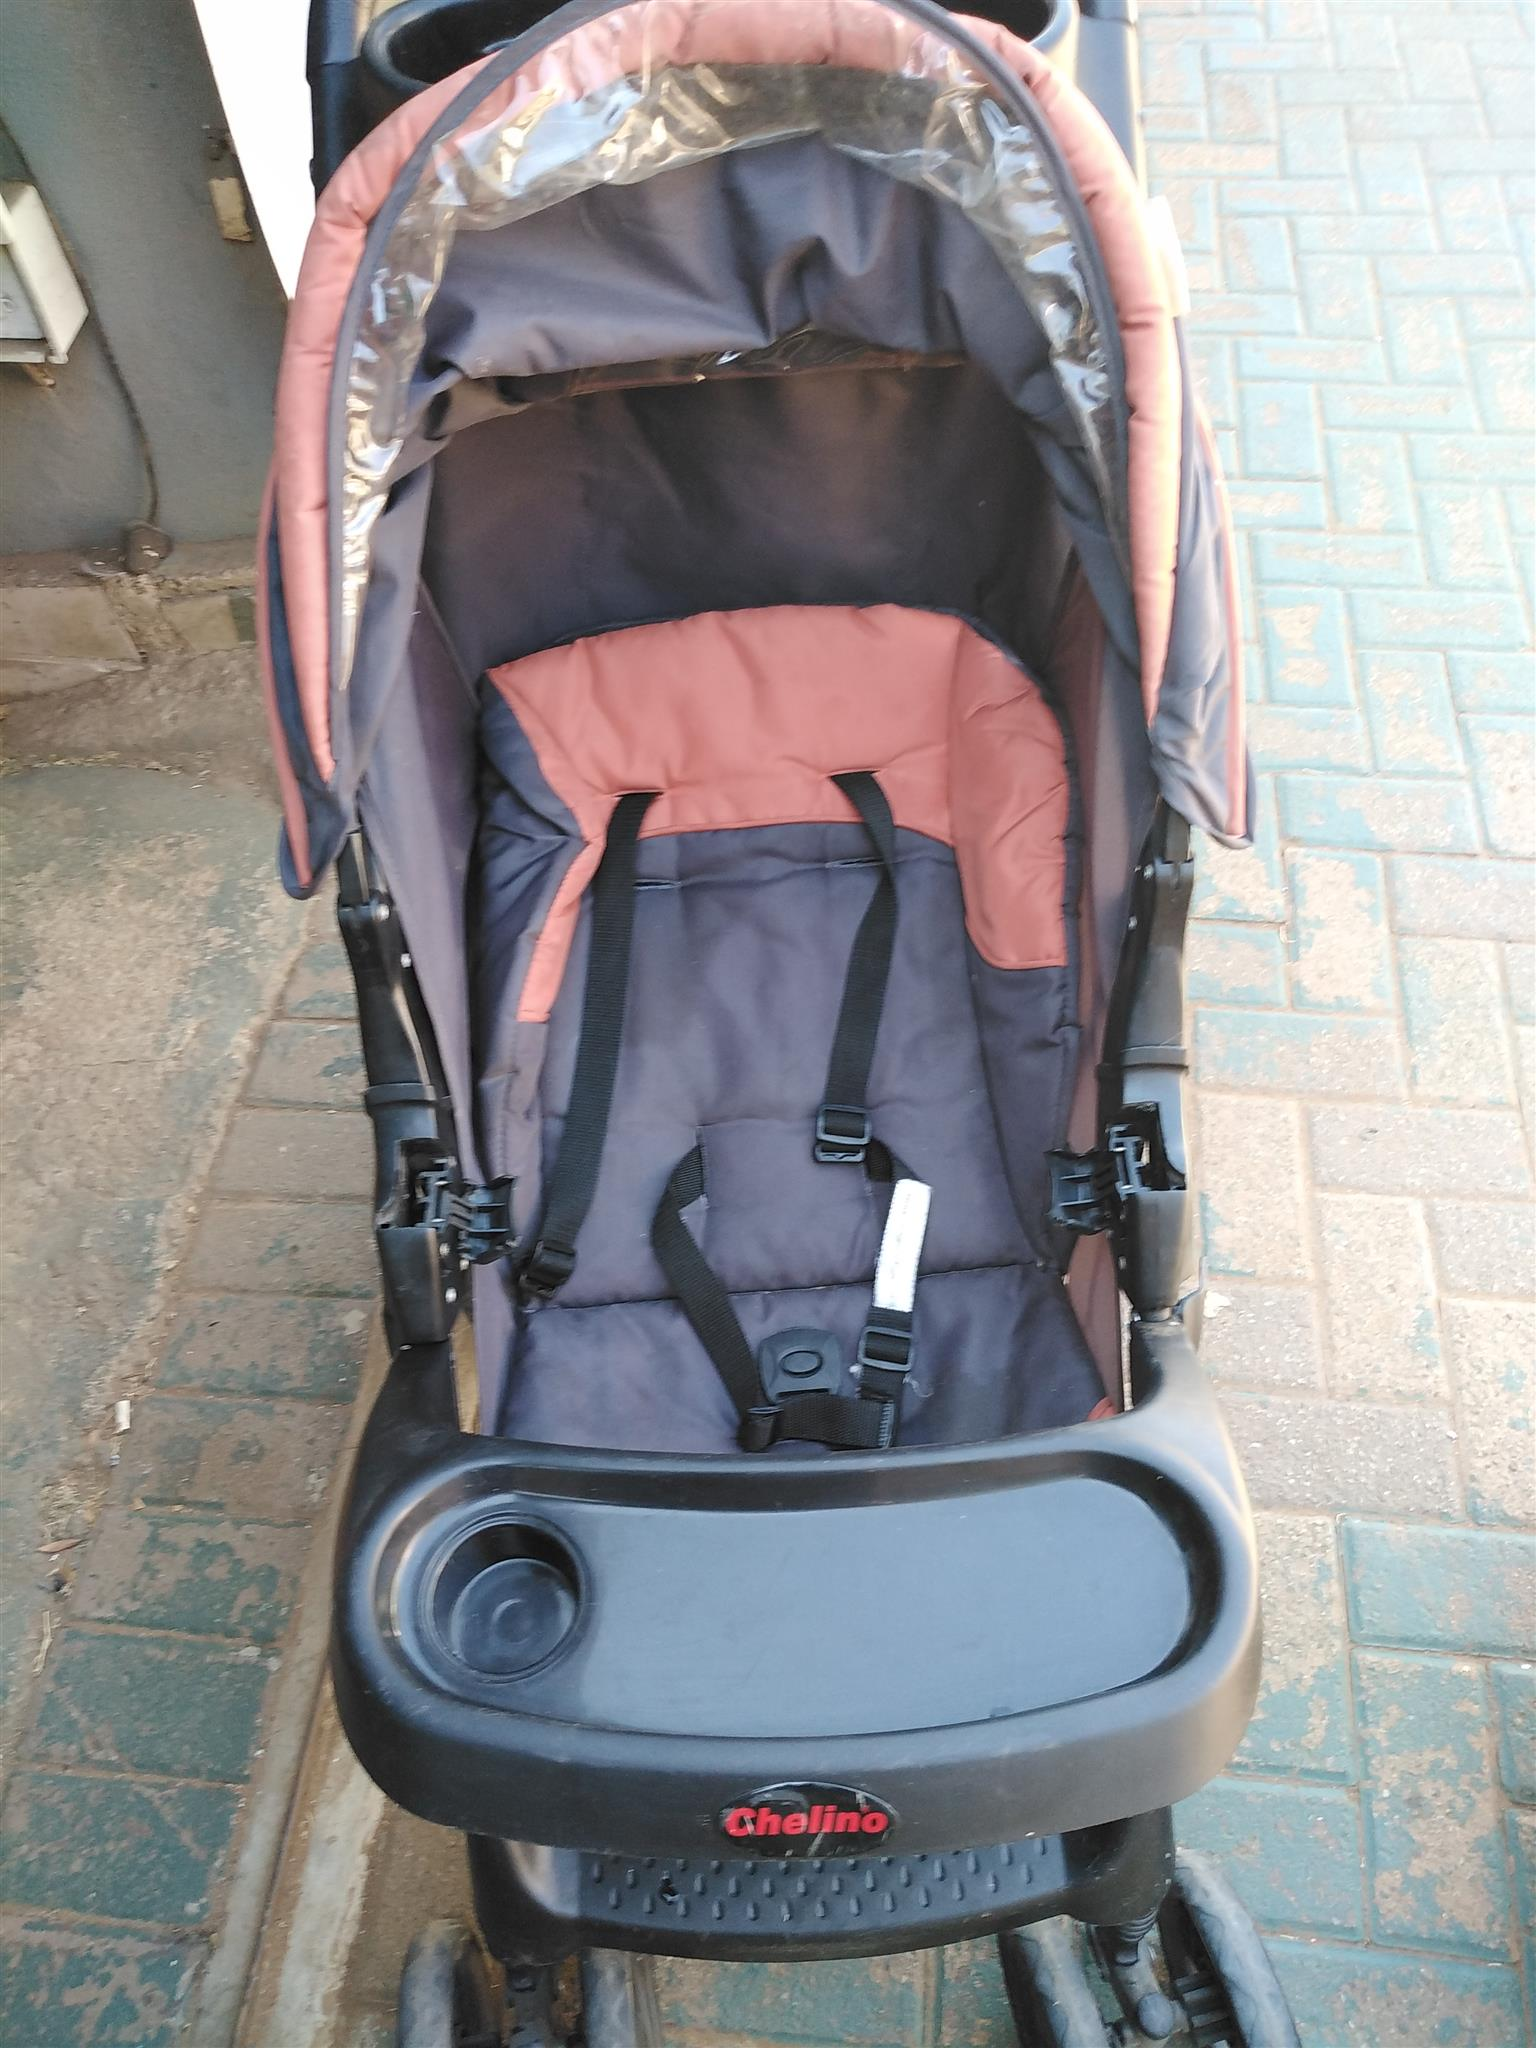 BABY STROLLER TO BUY